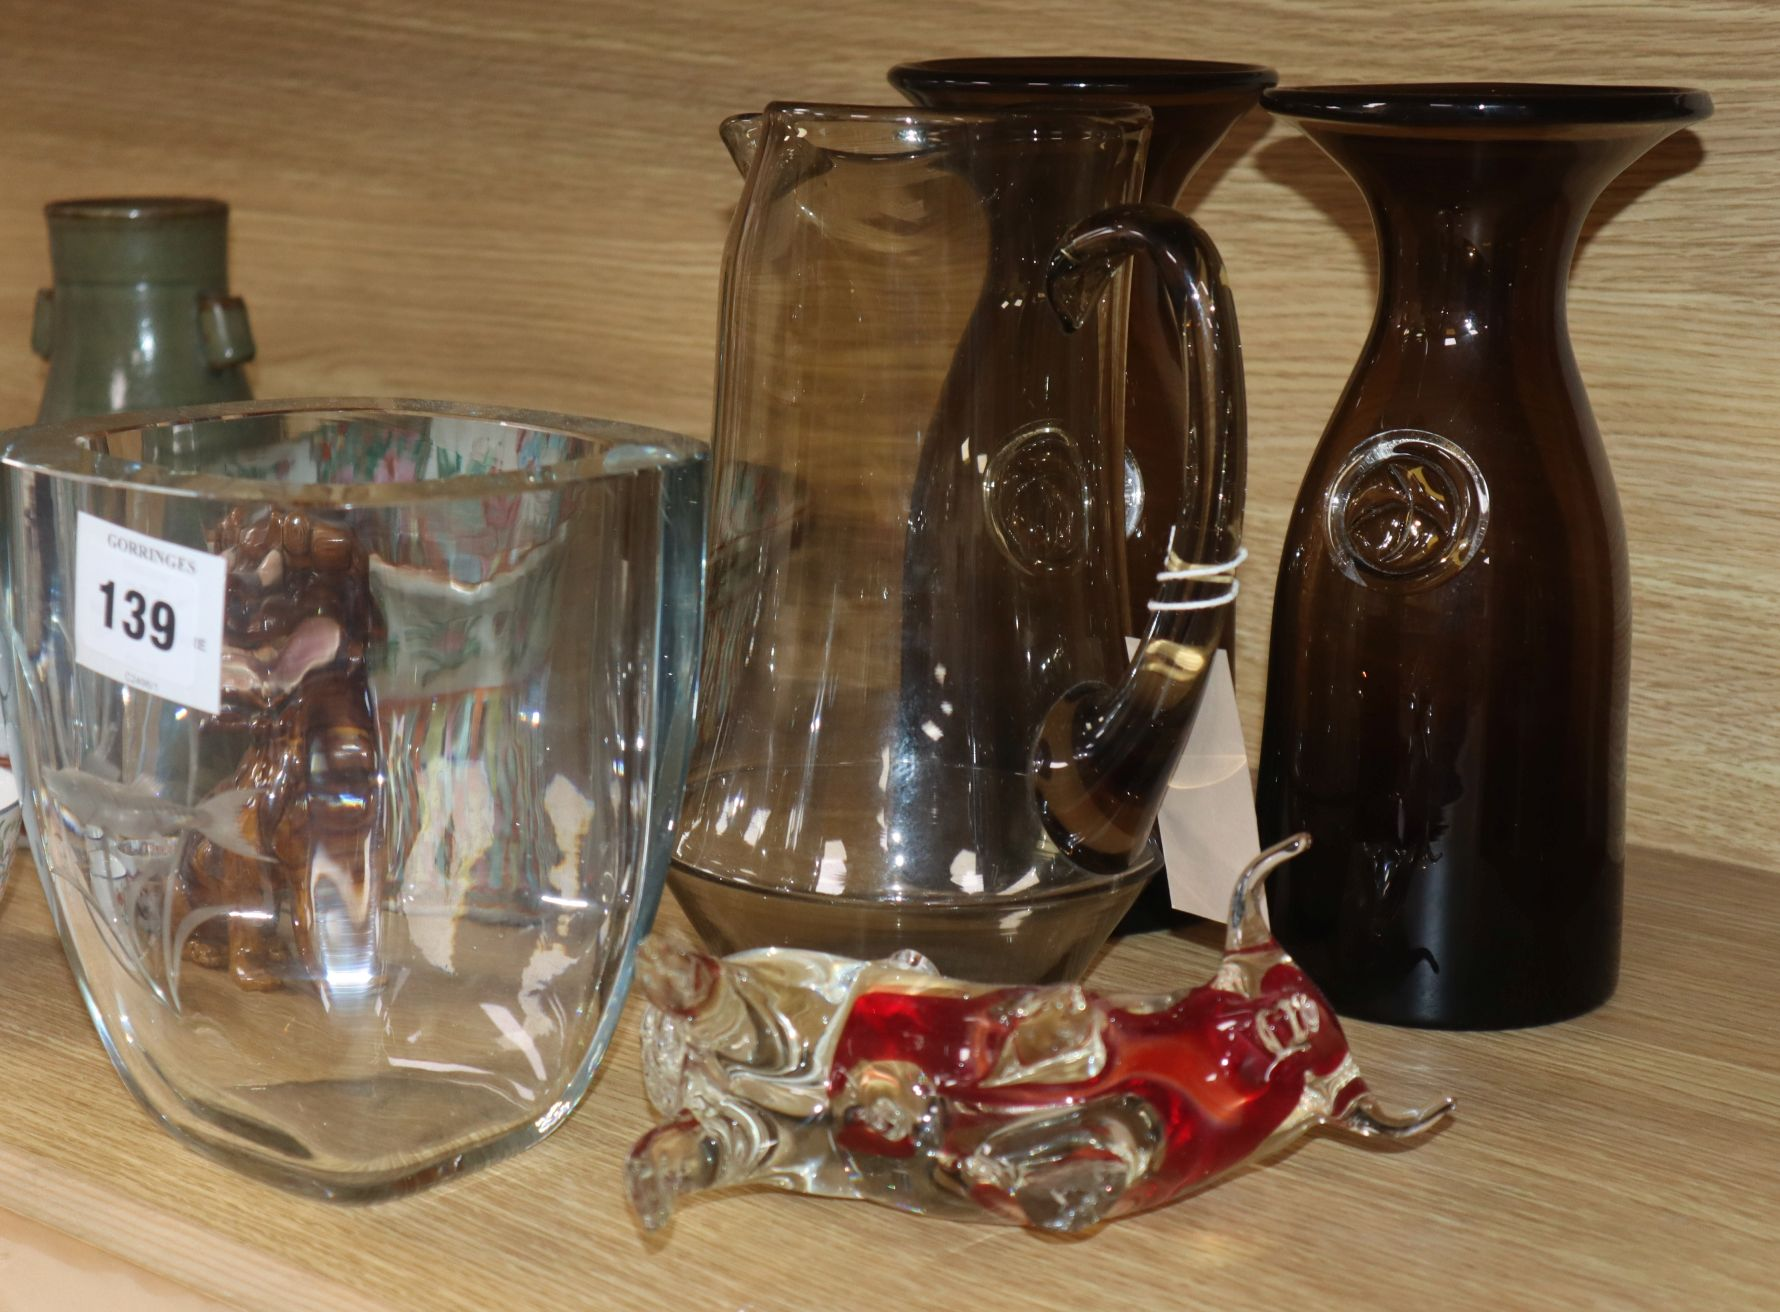 Lot 139 - A Kosta Boda etched glass vase, a Scandinavian glass jug and a pair of vases